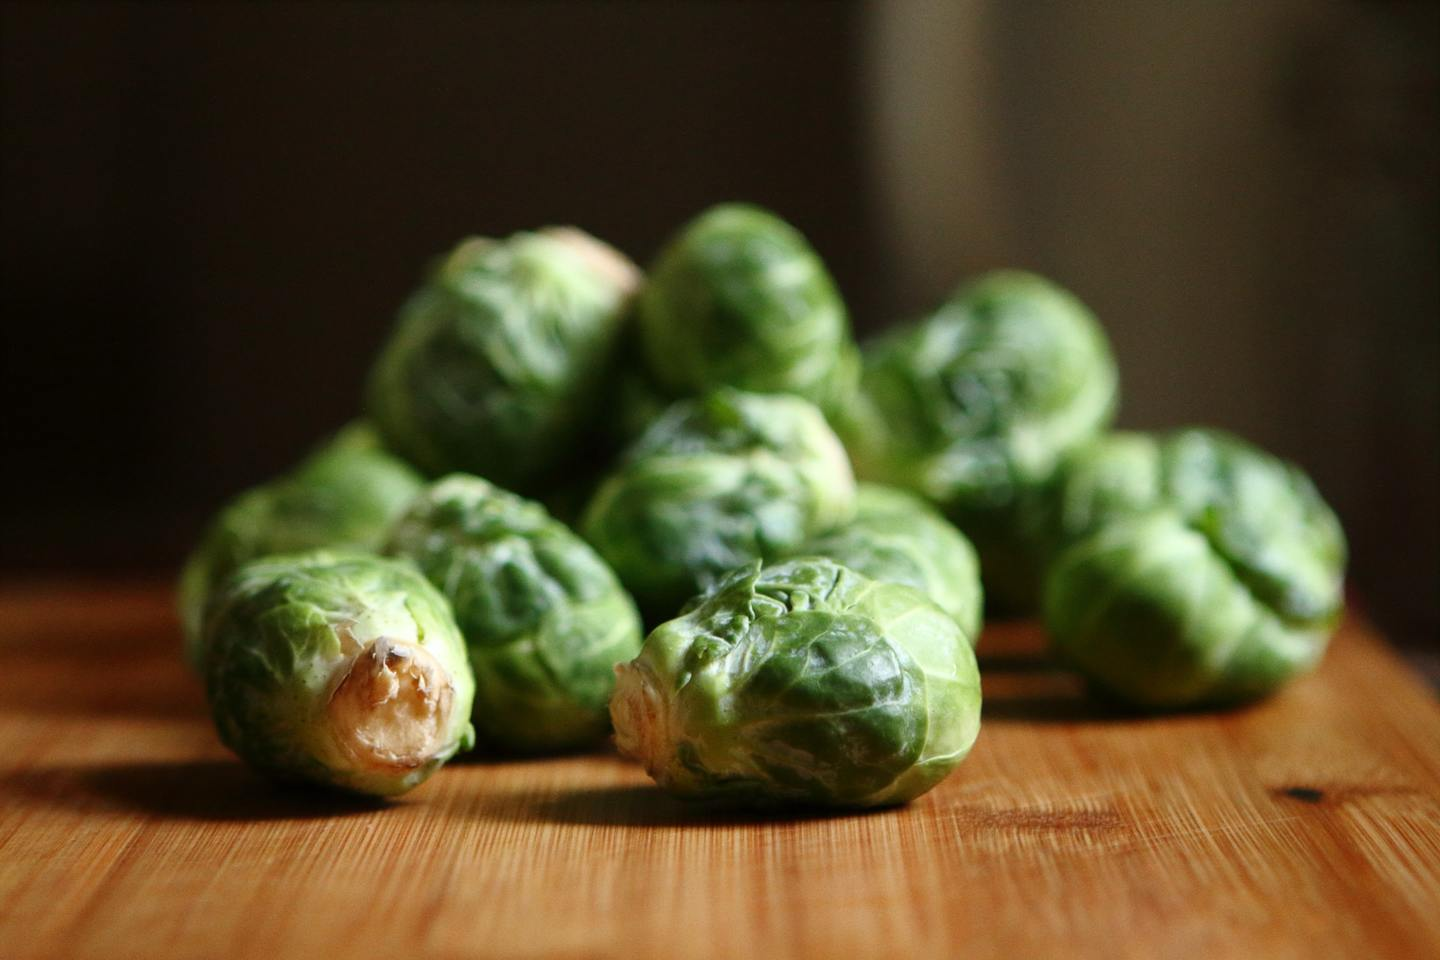 A pile of Brussel sprouts on a table